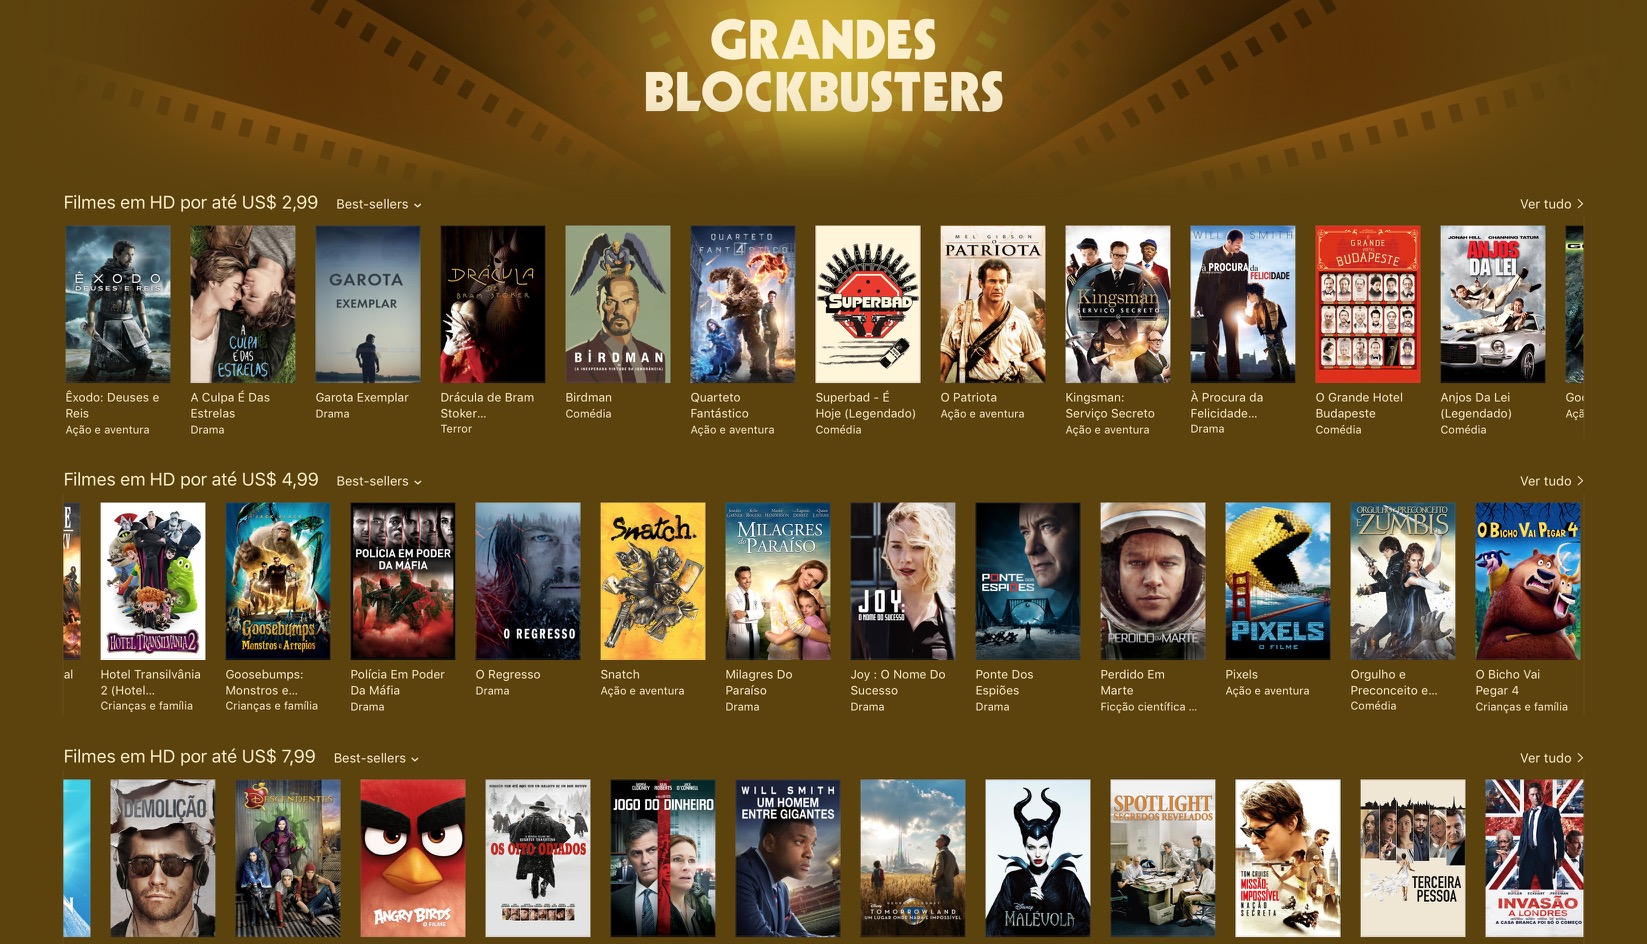 Grandes blockbusters - iTunes [Movie] Store